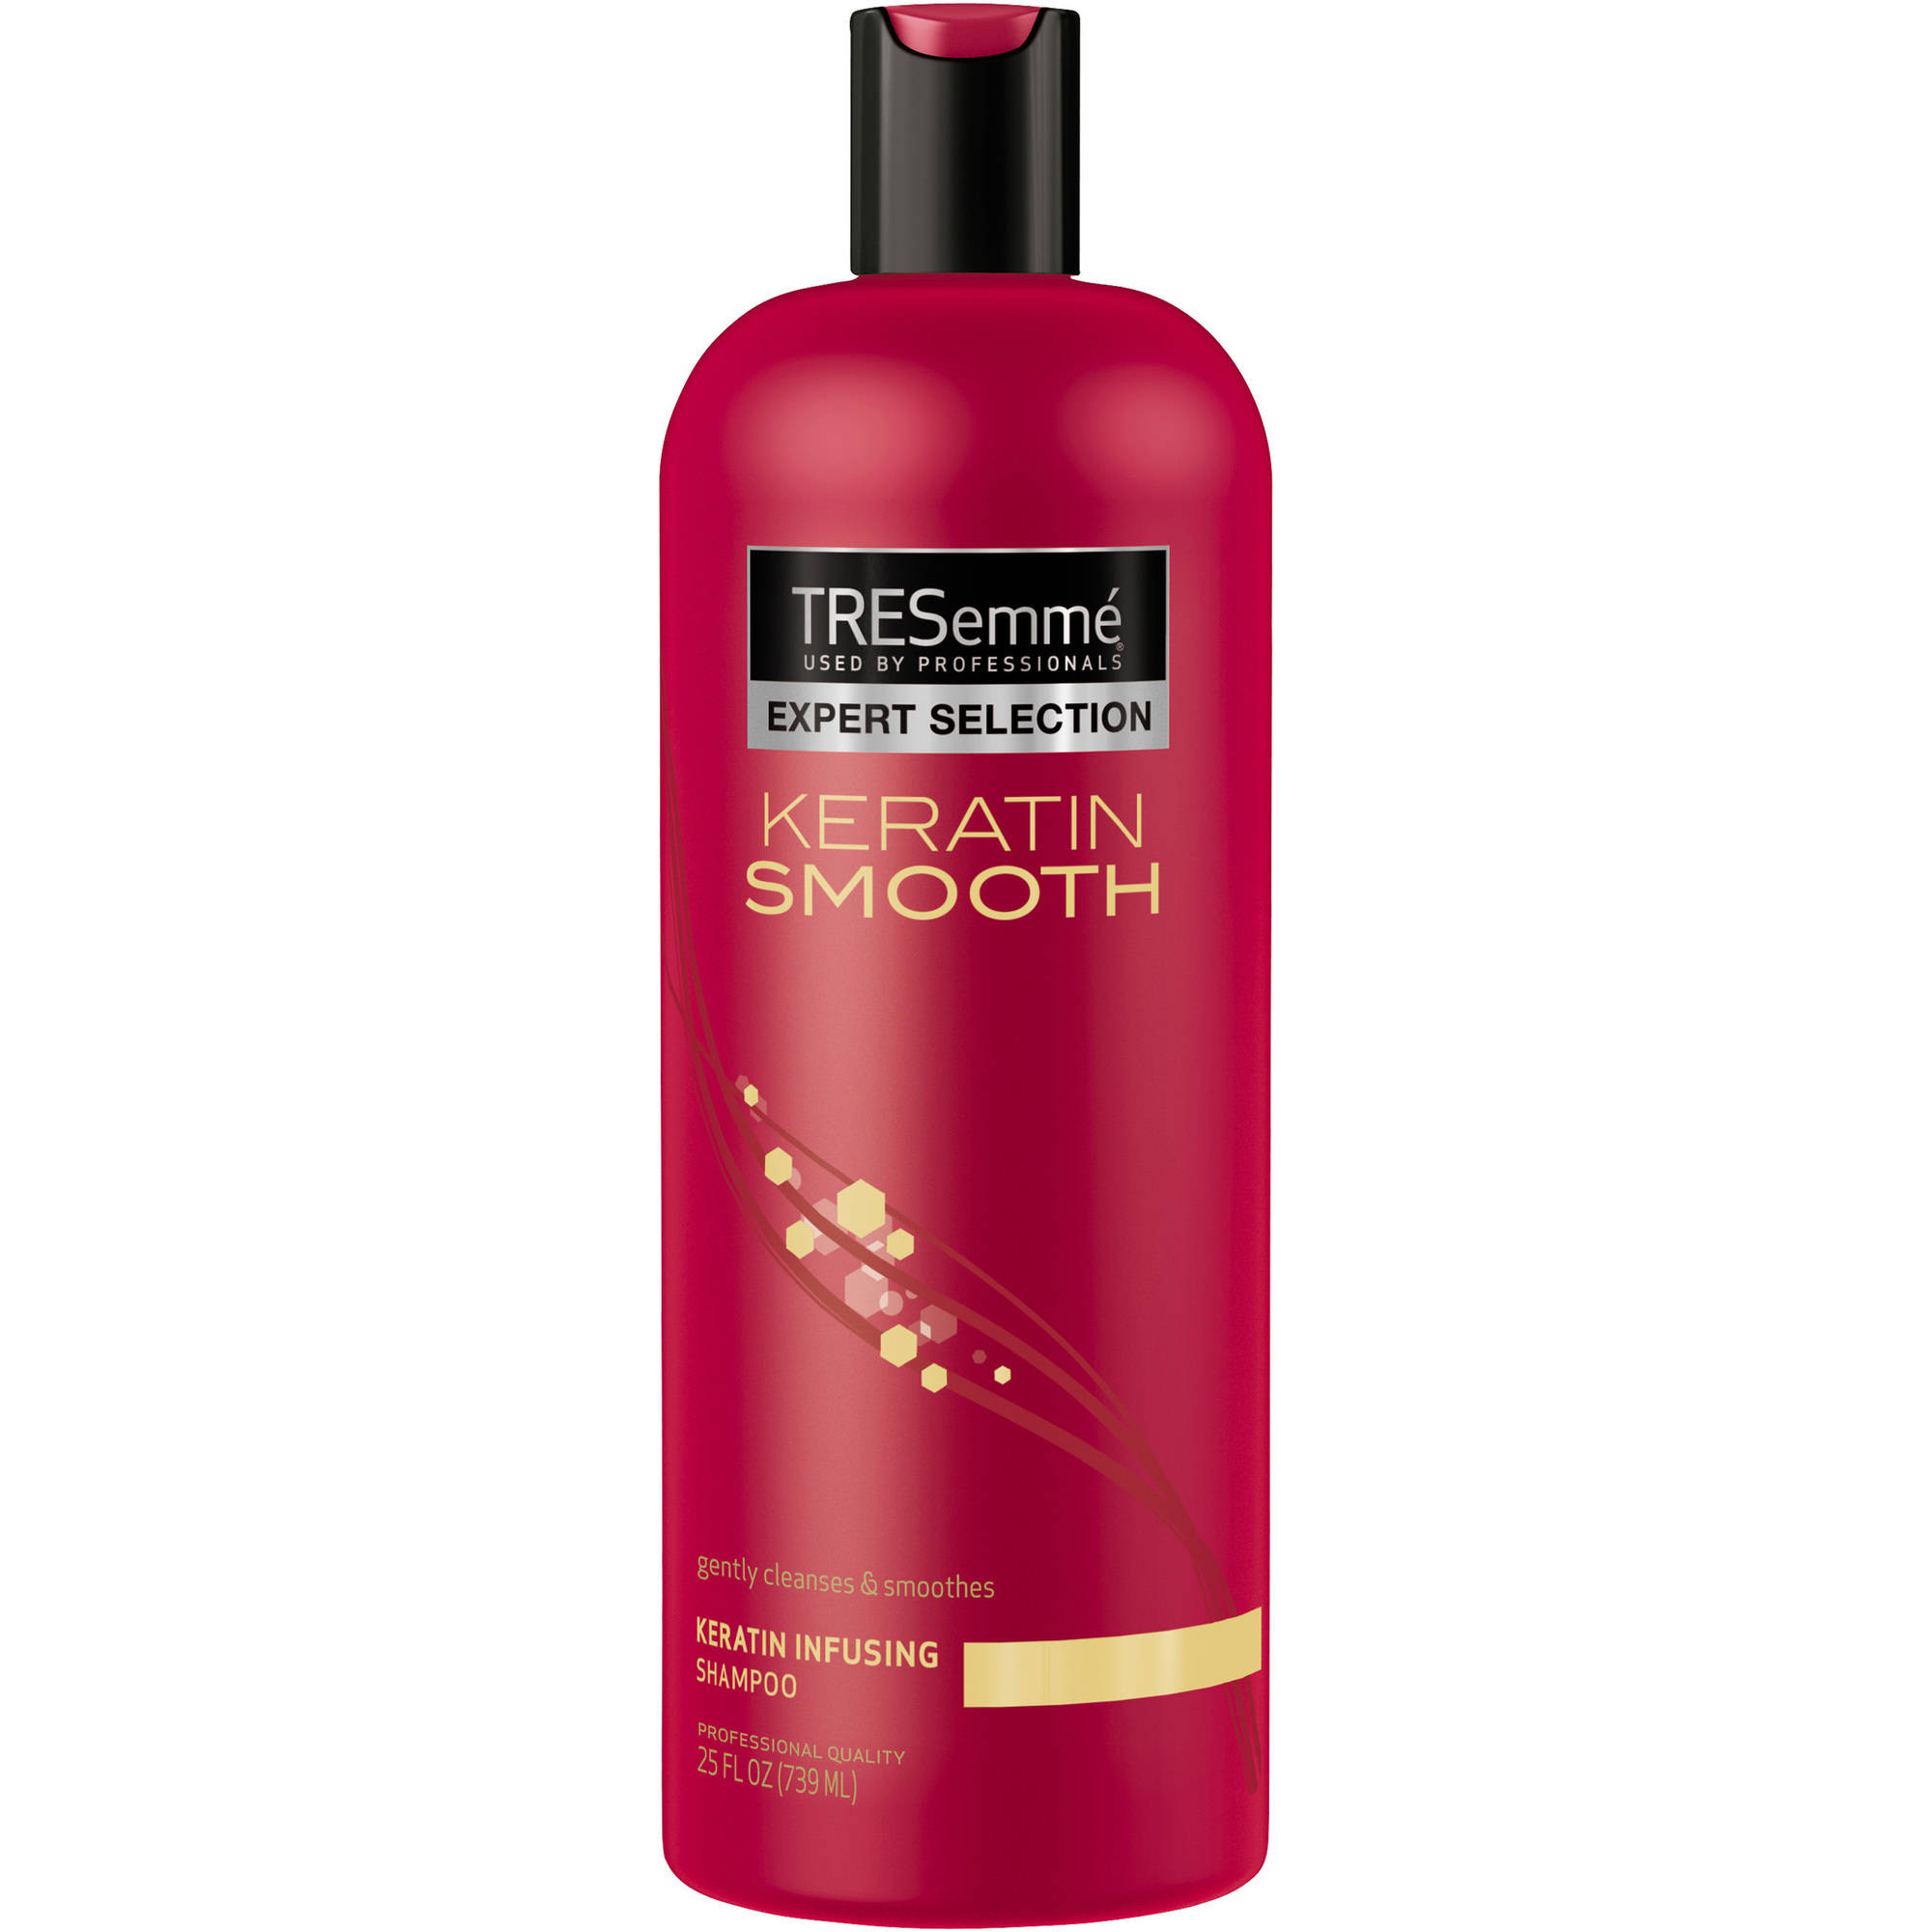 cismis TREsemme Keratin Smooth Shampoo - Top 5 Shampoos for Chemically Treated & Colored Hair- Reviews & Price